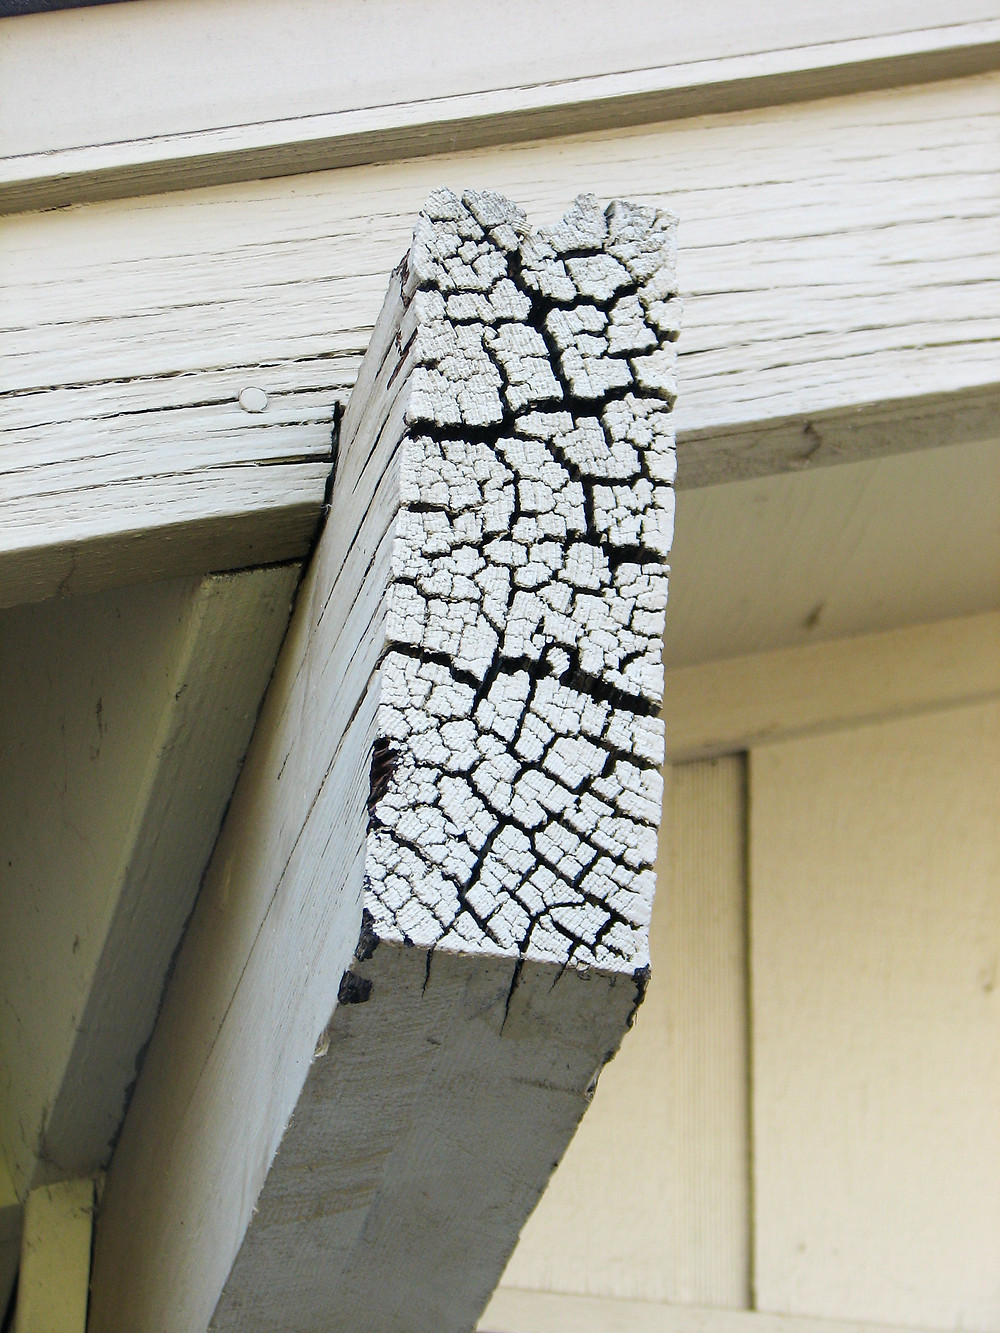 End grain cracking in roof beam with dry rot